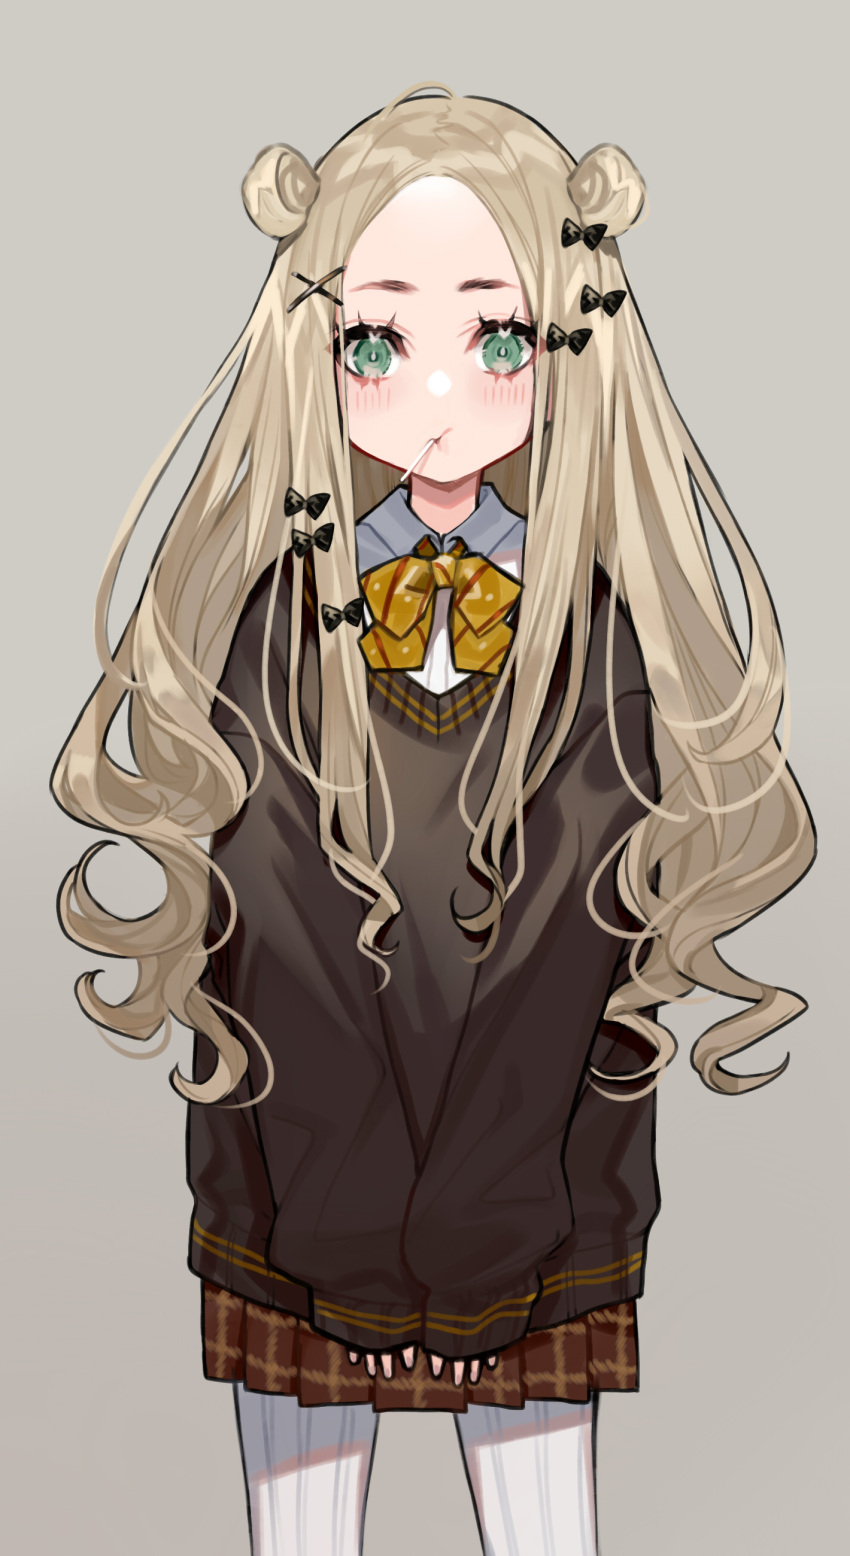 1girl abigail_williams_(fate/grand_order) absurdres bangs black_bow blonde_hair blue_eyes blush bow bowtie brown_skirt candy collar commentary curly_hair double_bun english_commentary fate/grand_order fate_(series) food food_in_mouth forehead hair_bow hair_bun highres lollipop long_hair long_sleeves looking_at_viewer pantyhose parted_bangs school_uniform sidelocks skirt sleeves_past_wrists solo standing sweater white_legwear yellow_bow yuu_(higashi_no_penguin)